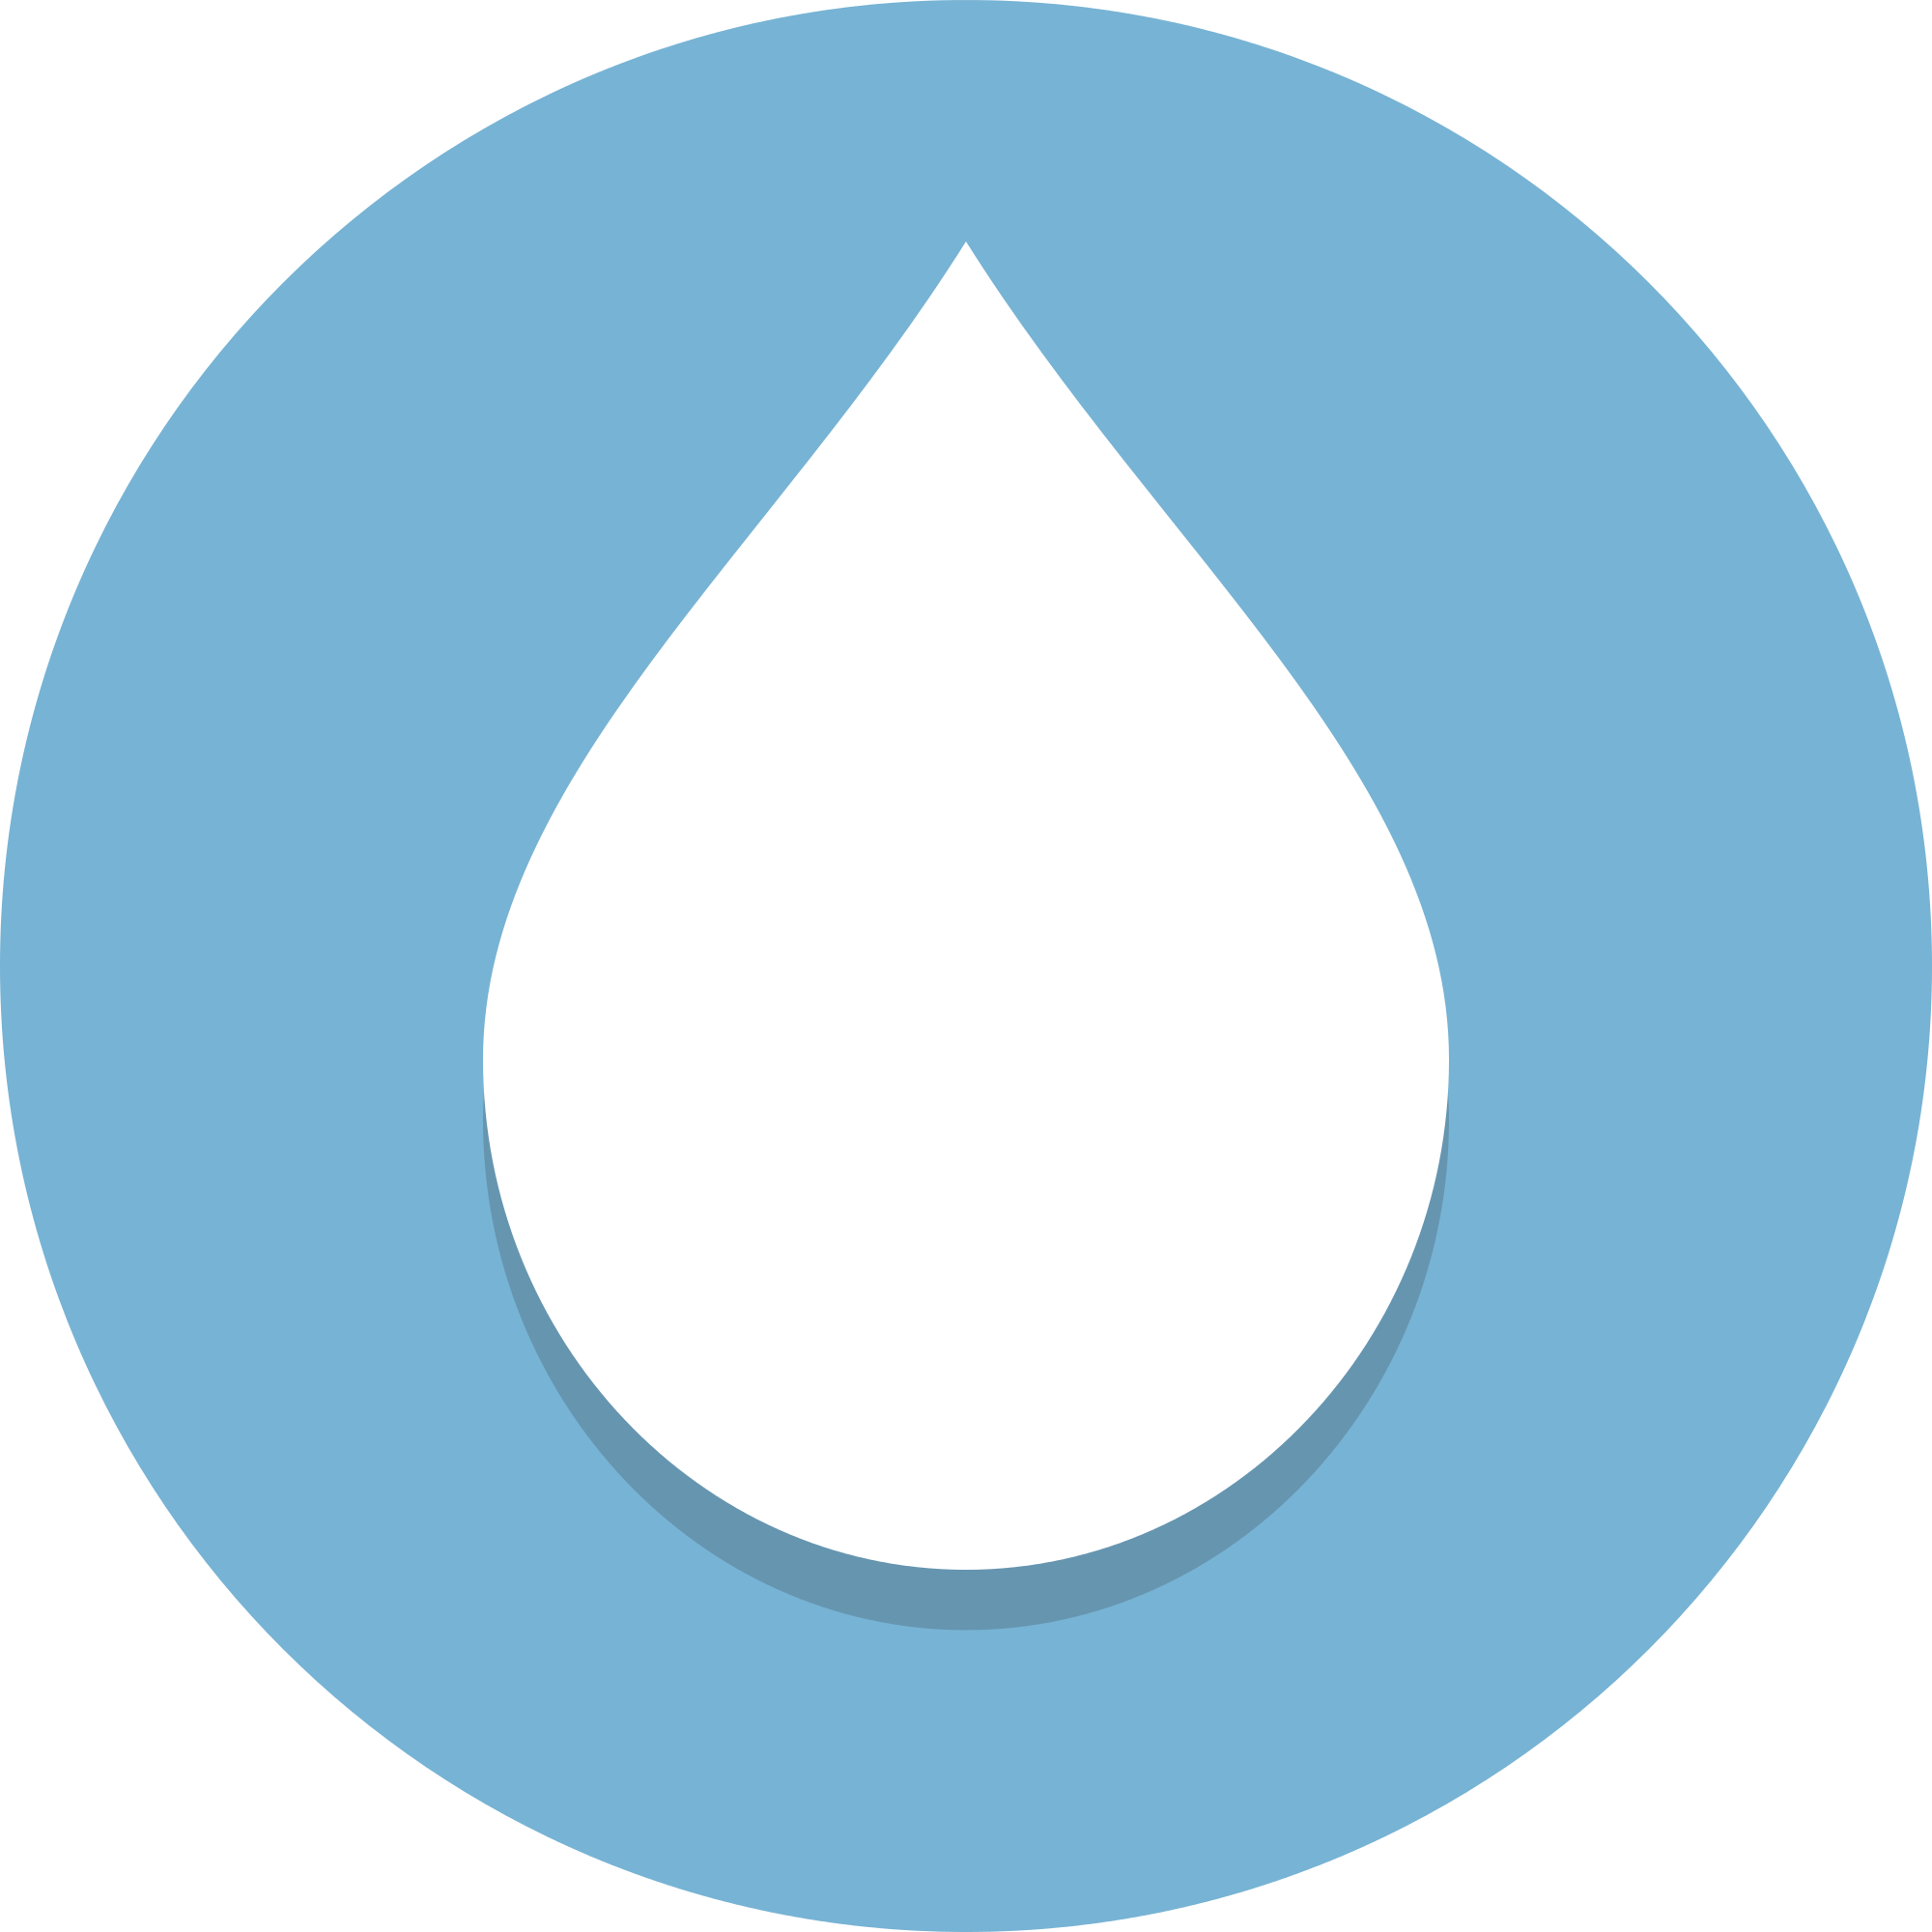 clip art royalty free Water svg. File circle icons wikimedia